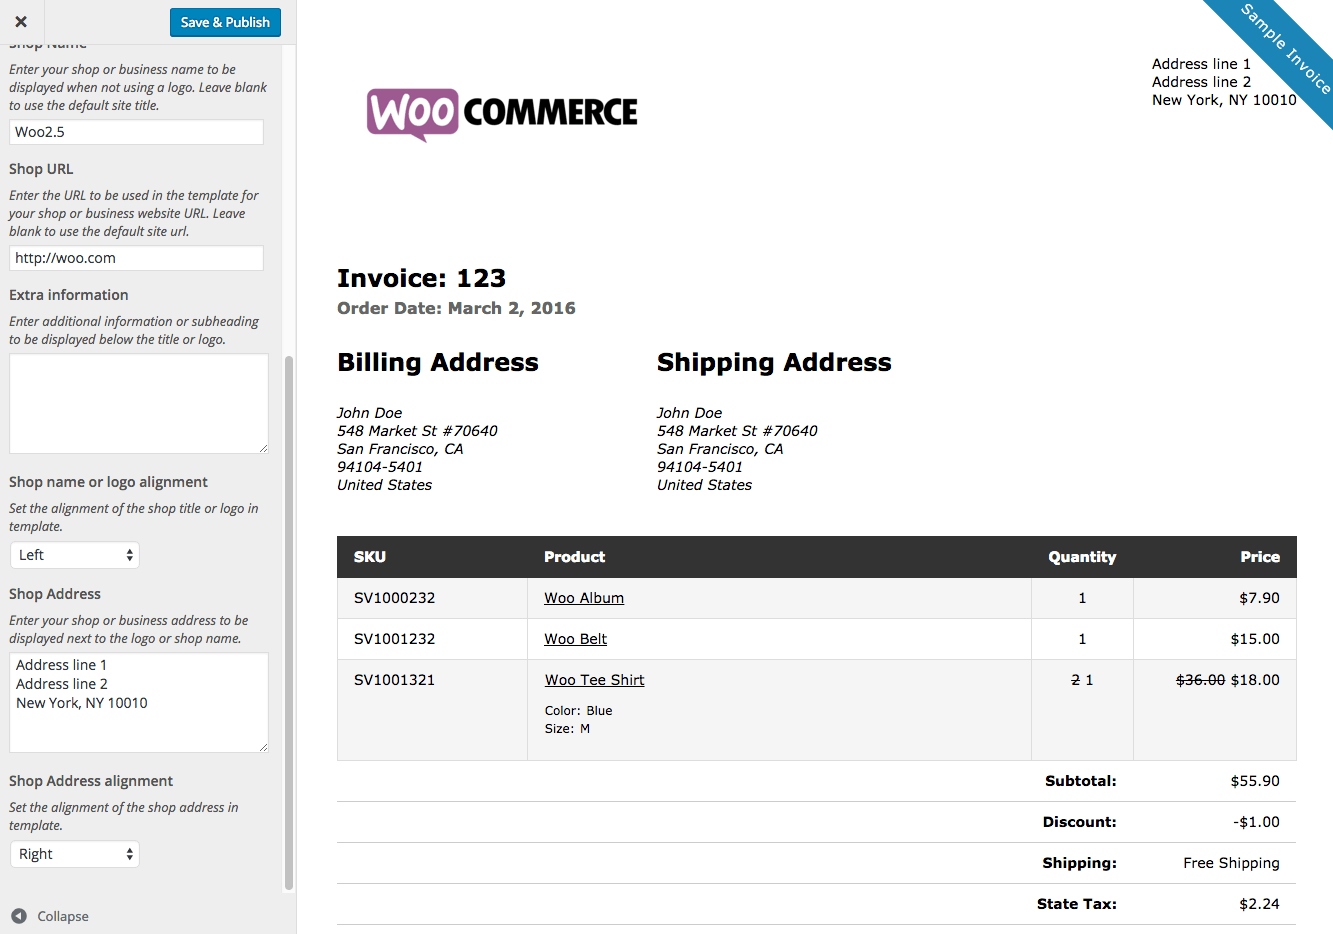 Howcanigettallerus  Winning Woocommerce Print Invoices Amp Packing Lists  Woocommerce Docs With Goodlooking Woocommerce Print Invoices  Packing Lists Customizer With Comely Blank Cash Receipt Also Mobile Receipt In Addition Jet Blue Receipts And Property Receipt As Well As Forever  Receipt Additionally Ithaca Receipt Printer From Docswoocommercecom With Howcanigettallerus  Goodlooking Woocommerce Print Invoices Amp Packing Lists  Woocommerce Docs With Comely Woocommerce Print Invoices  Packing Lists Customizer And Winning Blank Cash Receipt Also Mobile Receipt In Addition Jet Blue Receipts From Docswoocommercecom